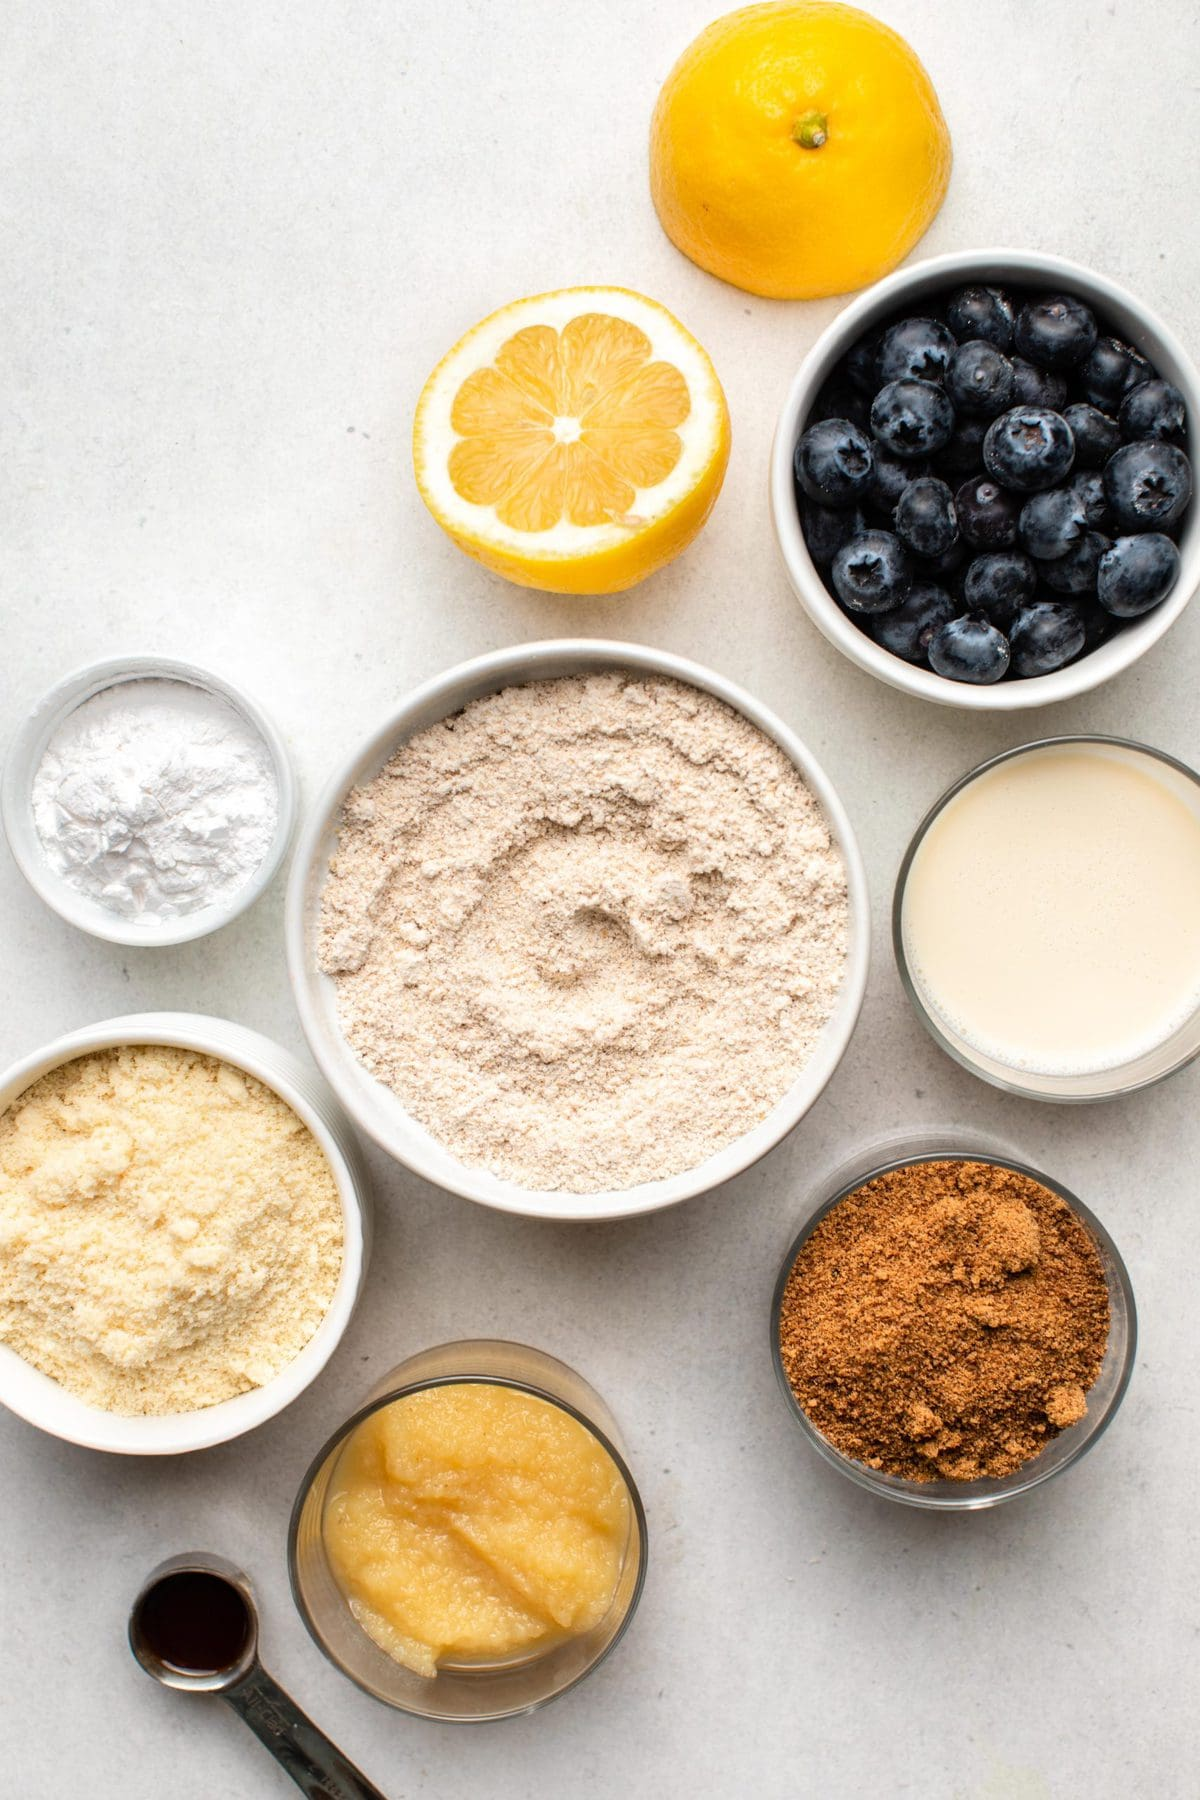 ingredients for lemon blueberry muffins in small bowls on grey background